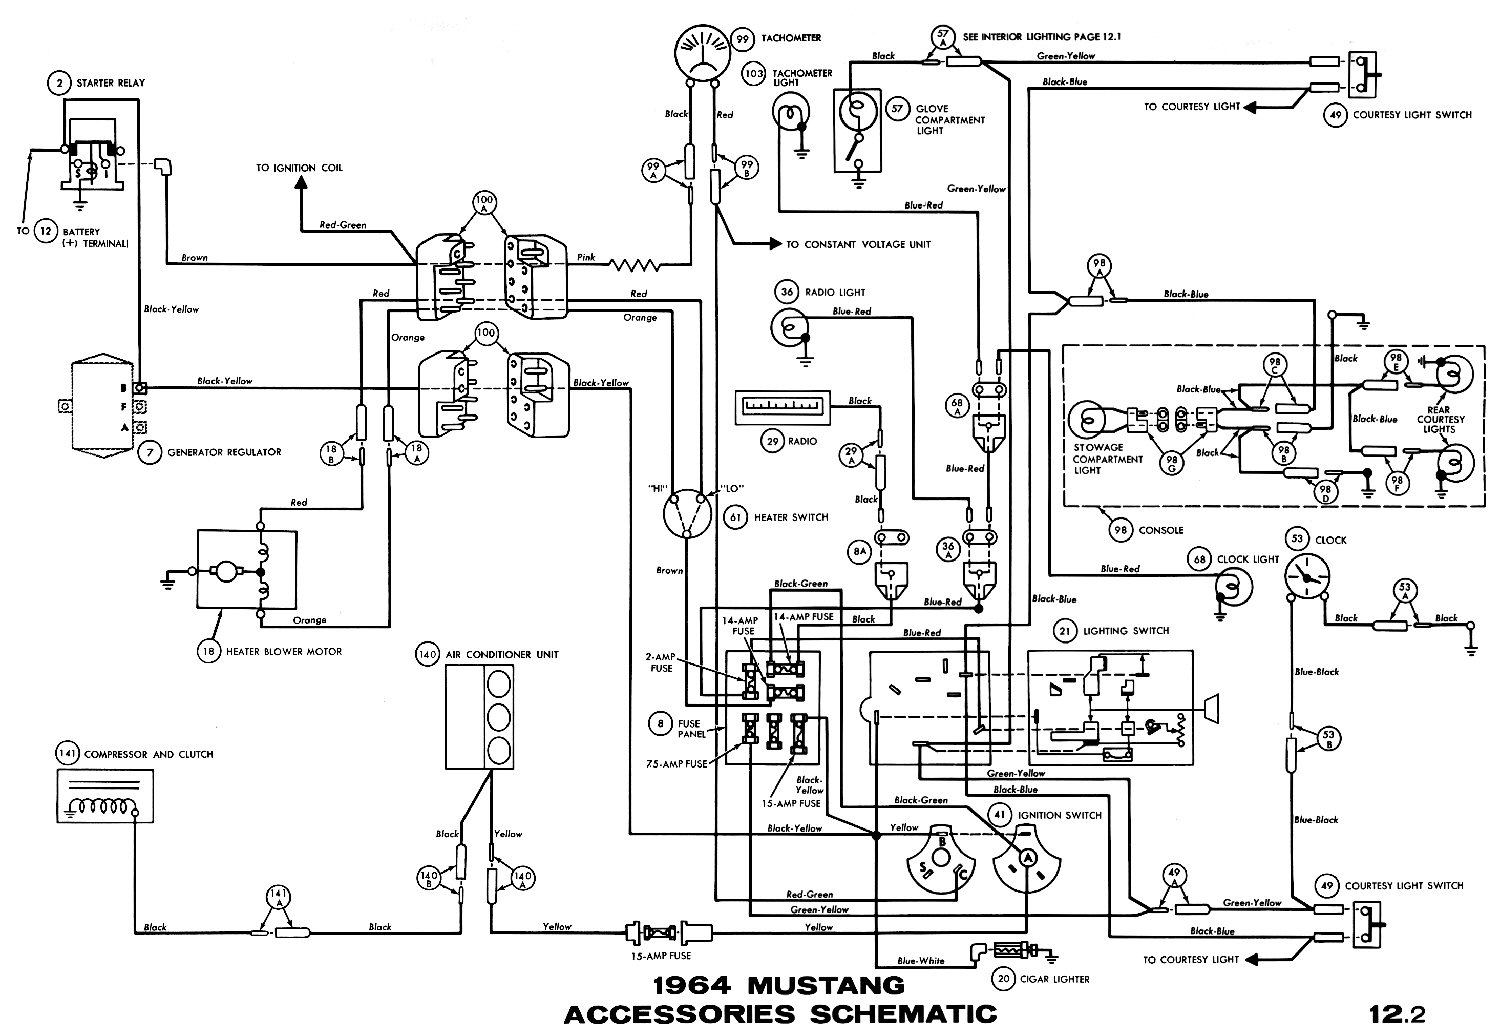 1964m 69 mustang wiring diagram 1969 ford f100 wiring diagram \u2022 wiring 1971 mustang fuse box diagram at mr168.co